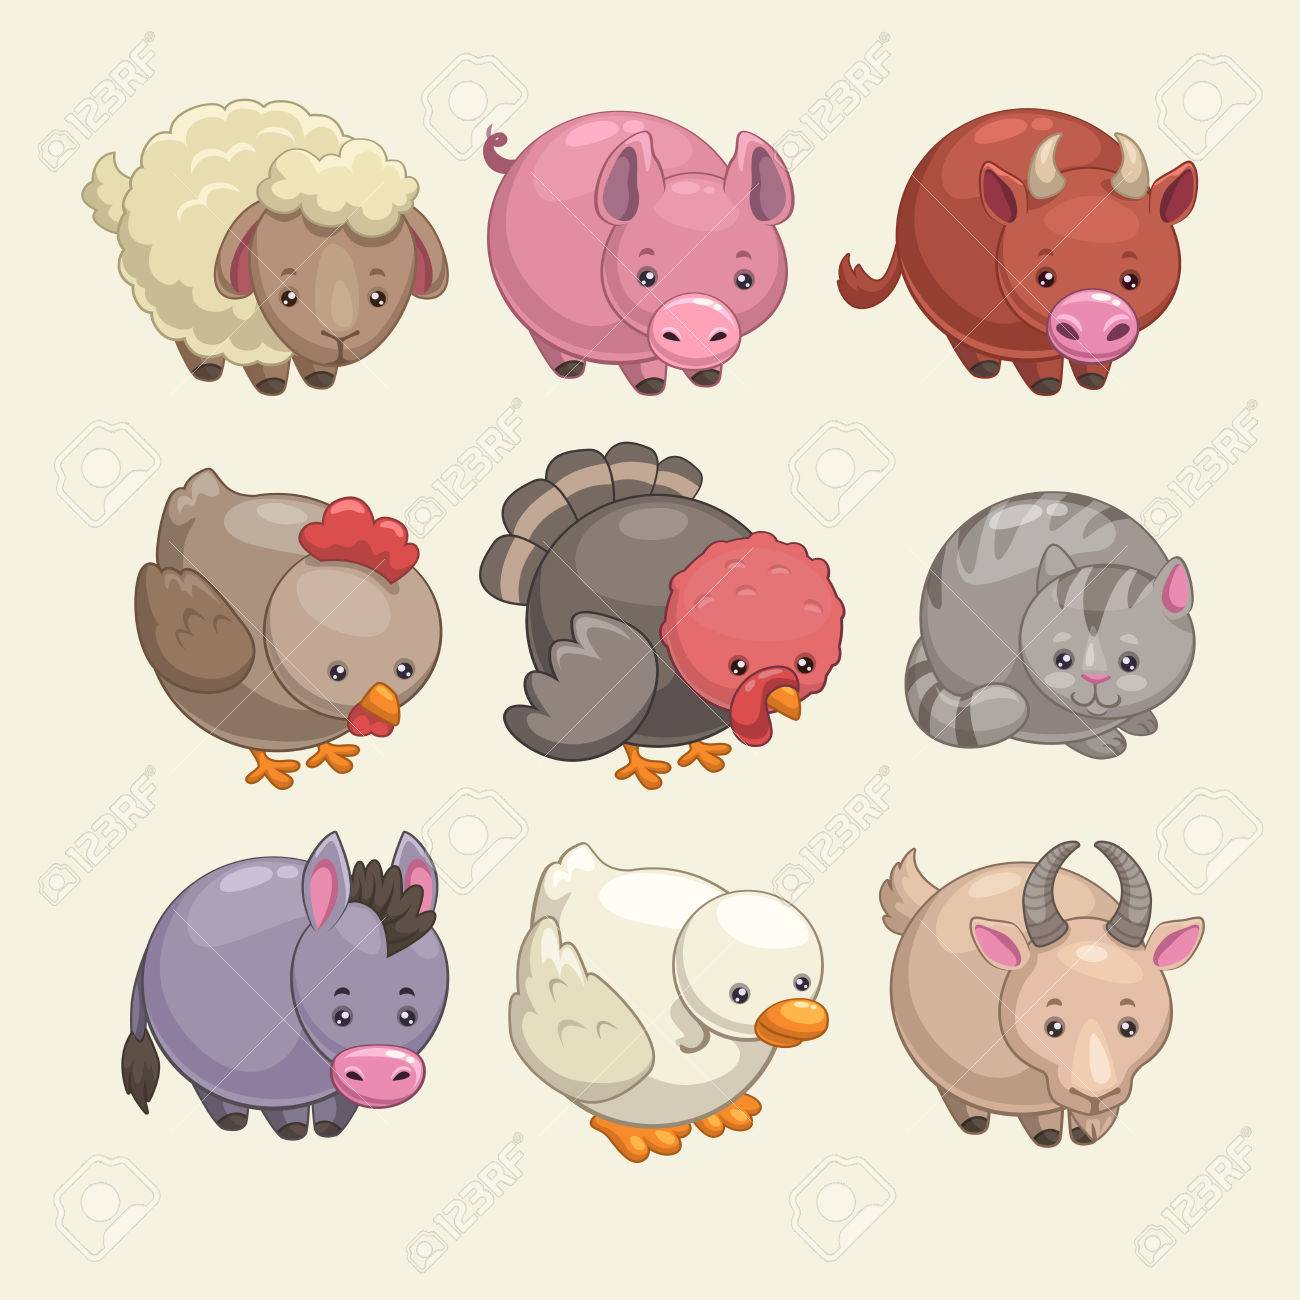 Image of: Cute Animals Cute Round Animals Stock Vector 41682225 123rfcom Cute Round Animals Royalty Free Cliparts Vectors And Stock